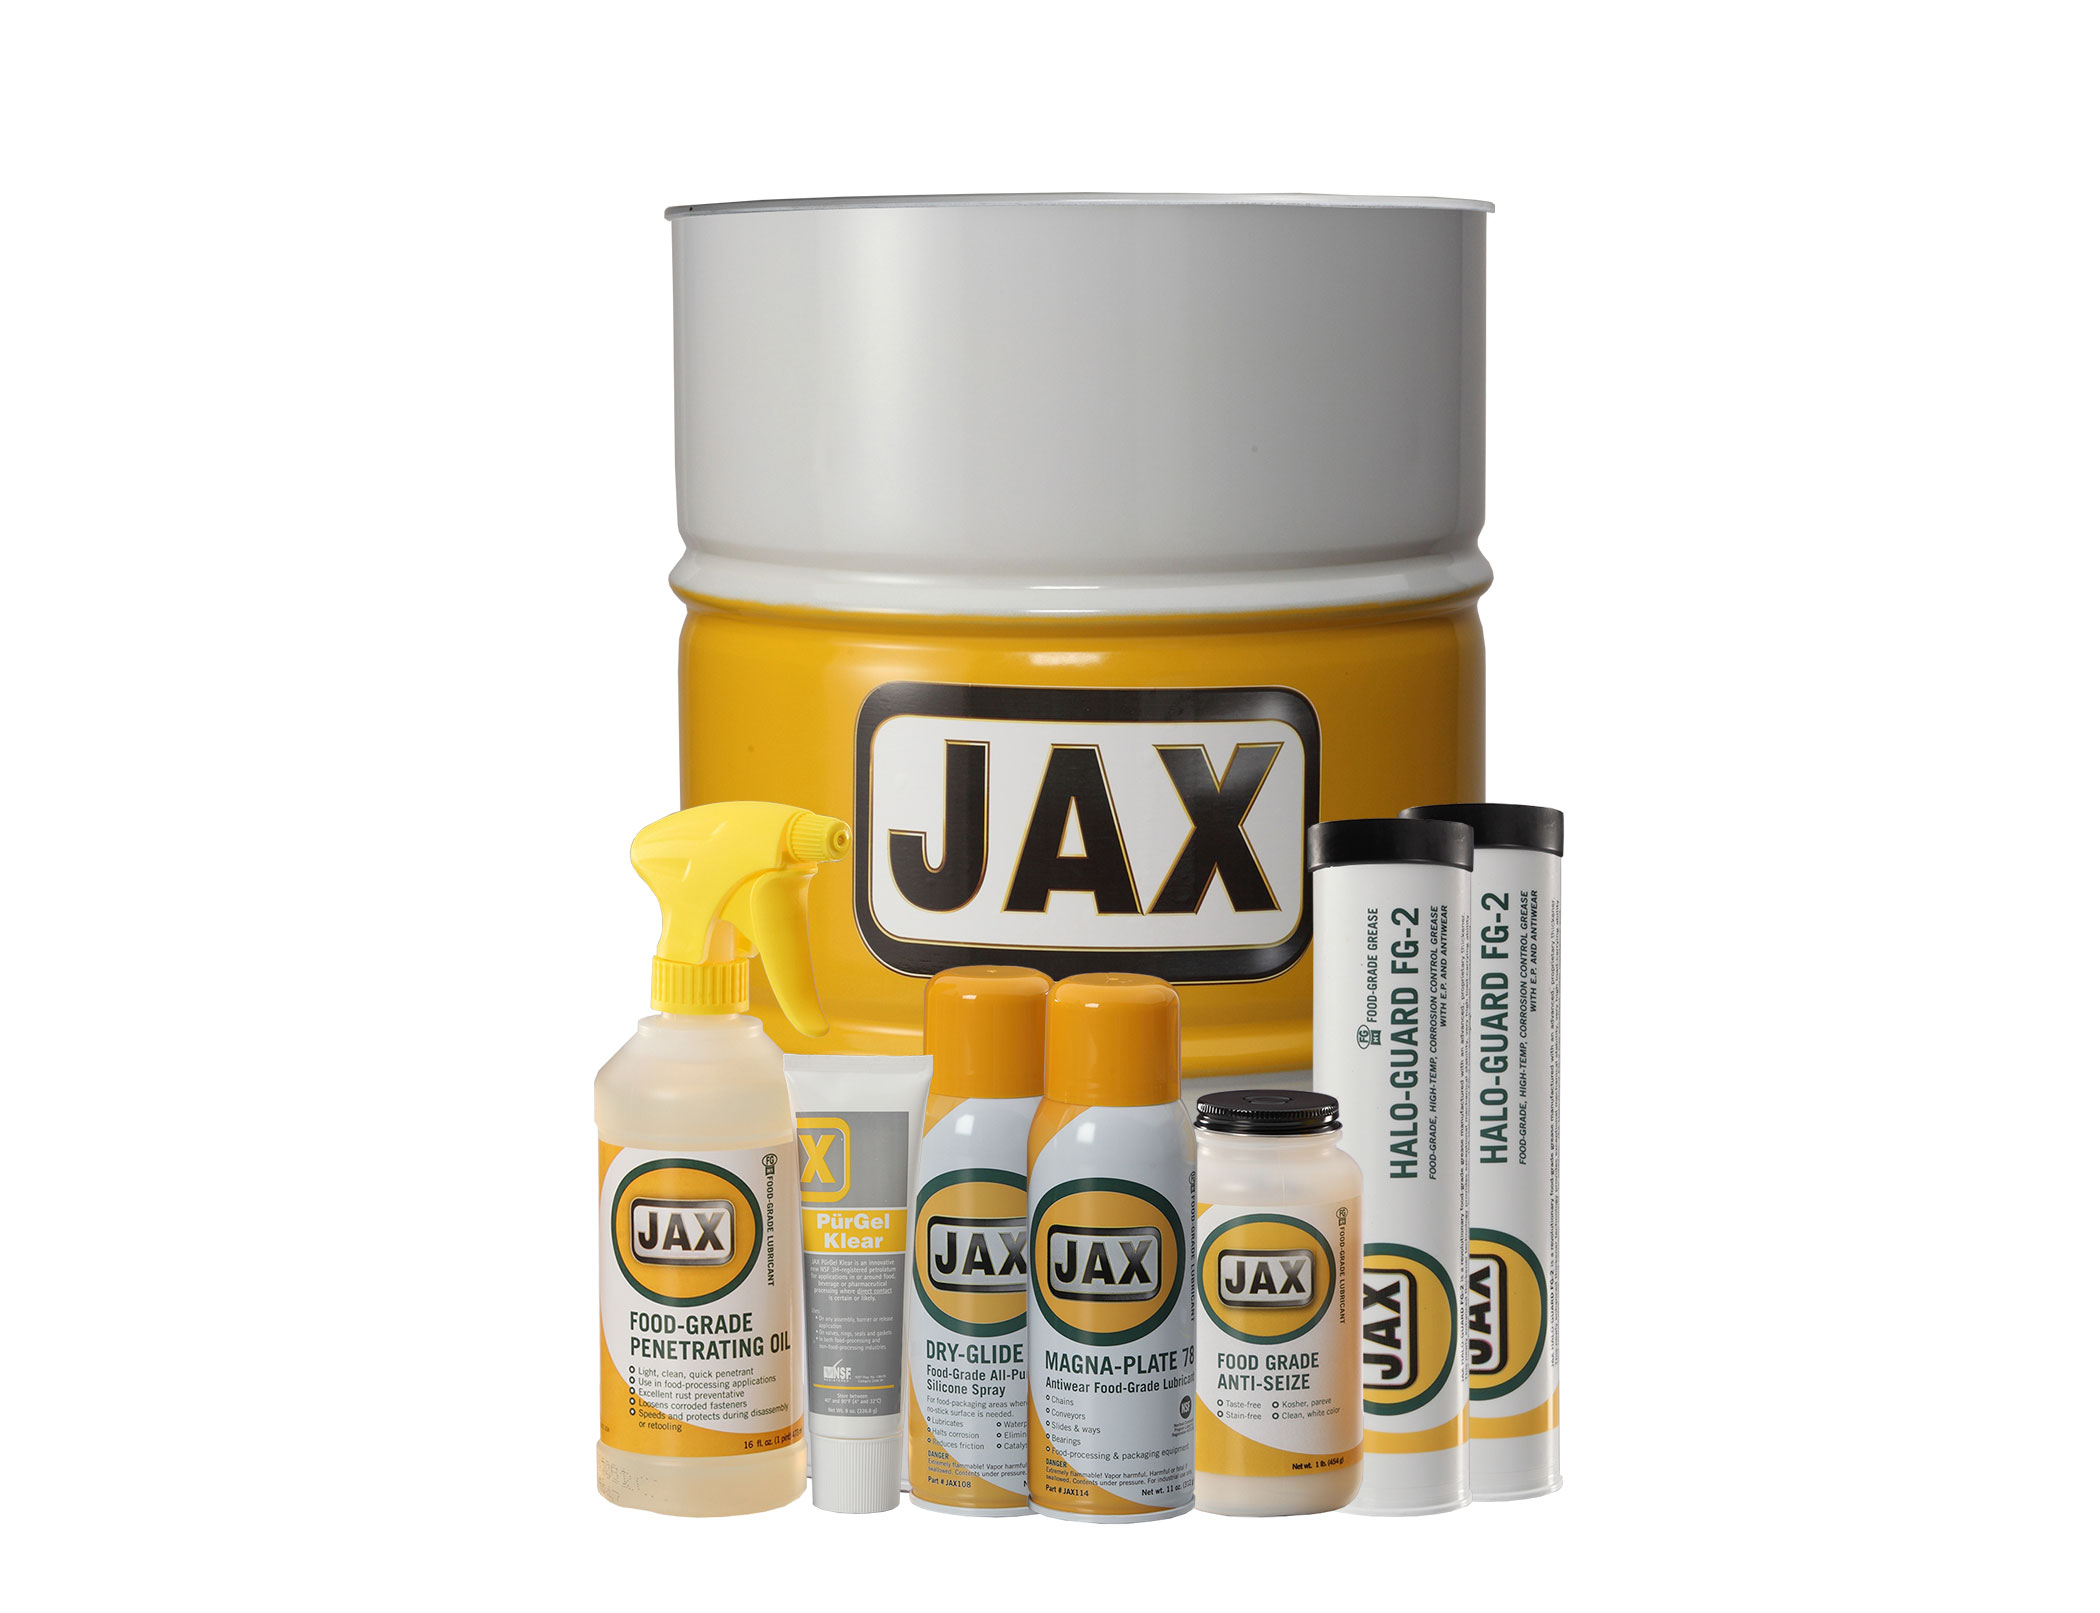 Jax products